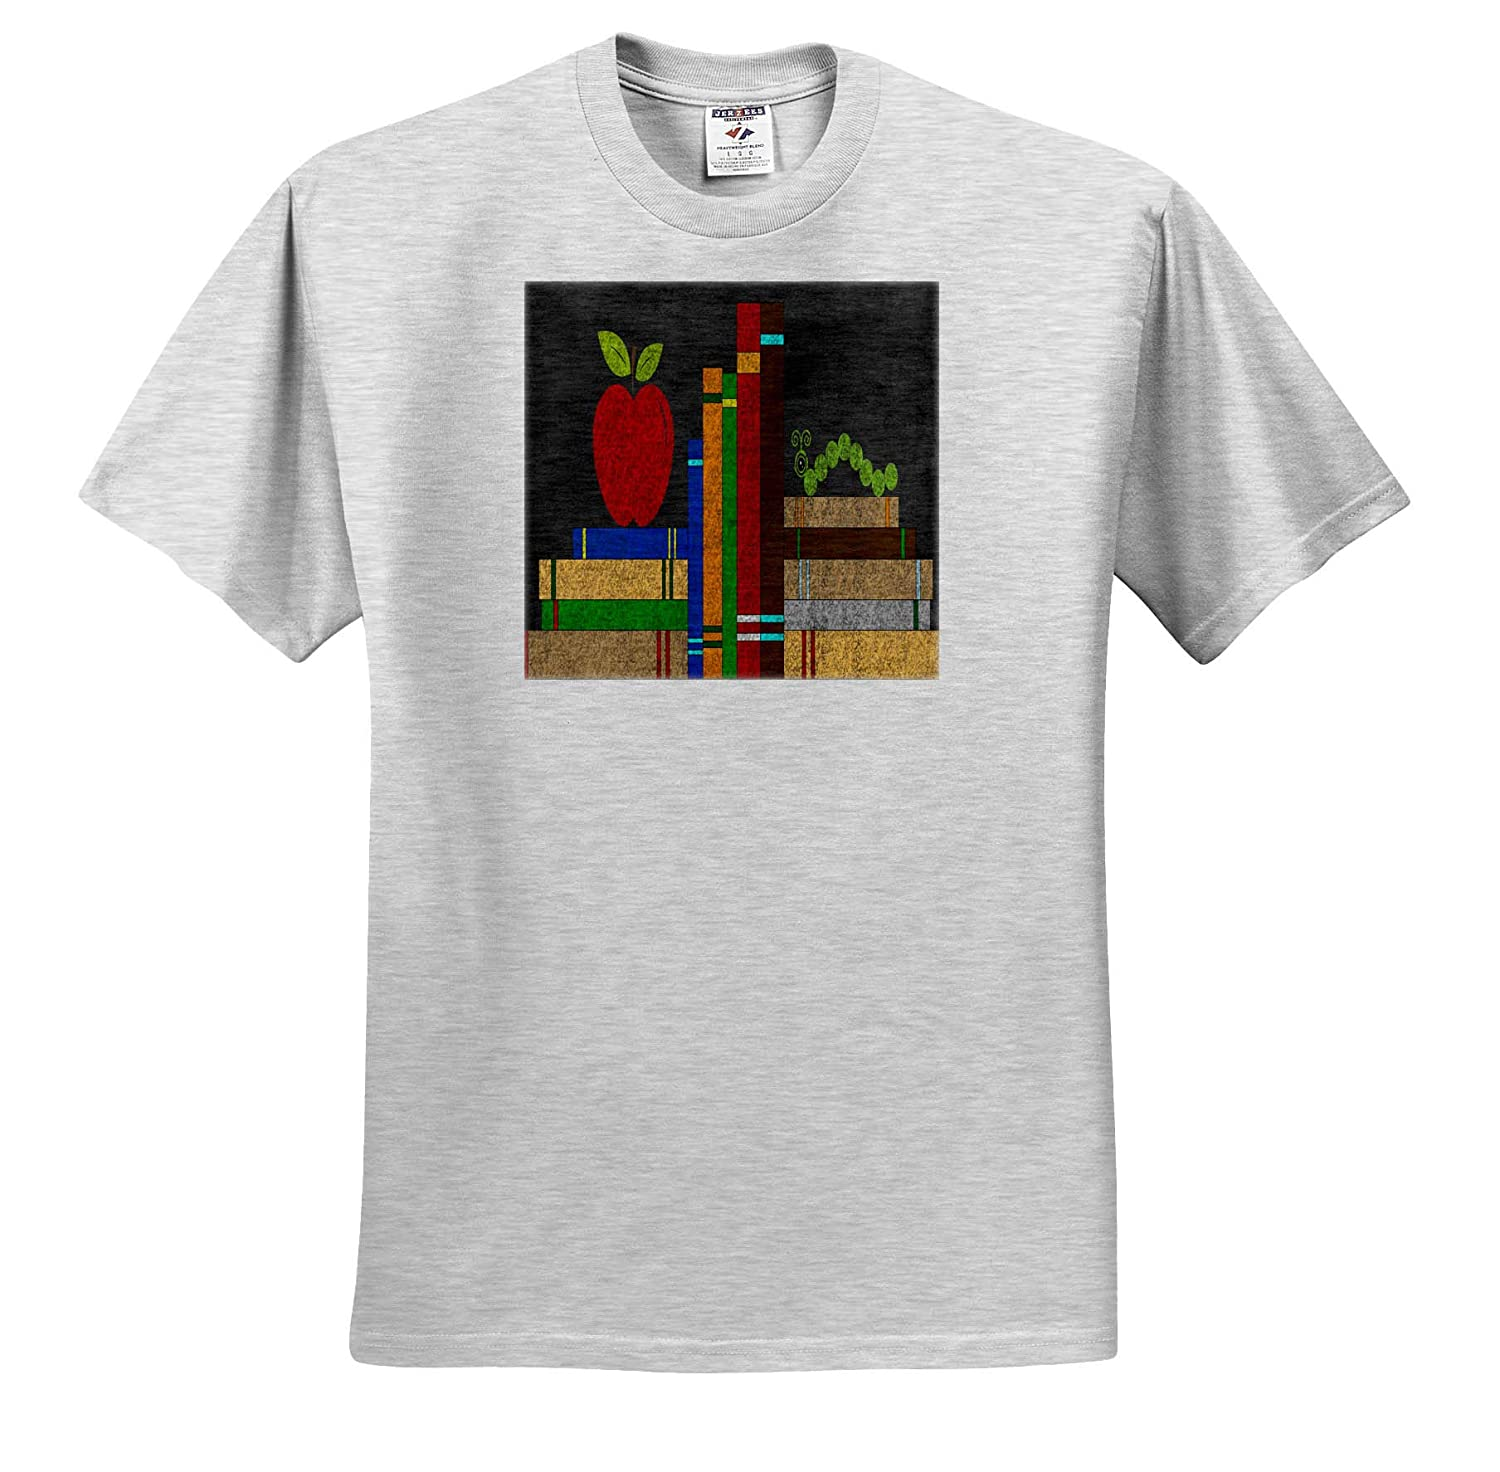 Design ts/_316267 and Book Room Illustration Books 3dRose Anne Marie Baugh Adult T-Shirt XL Apple